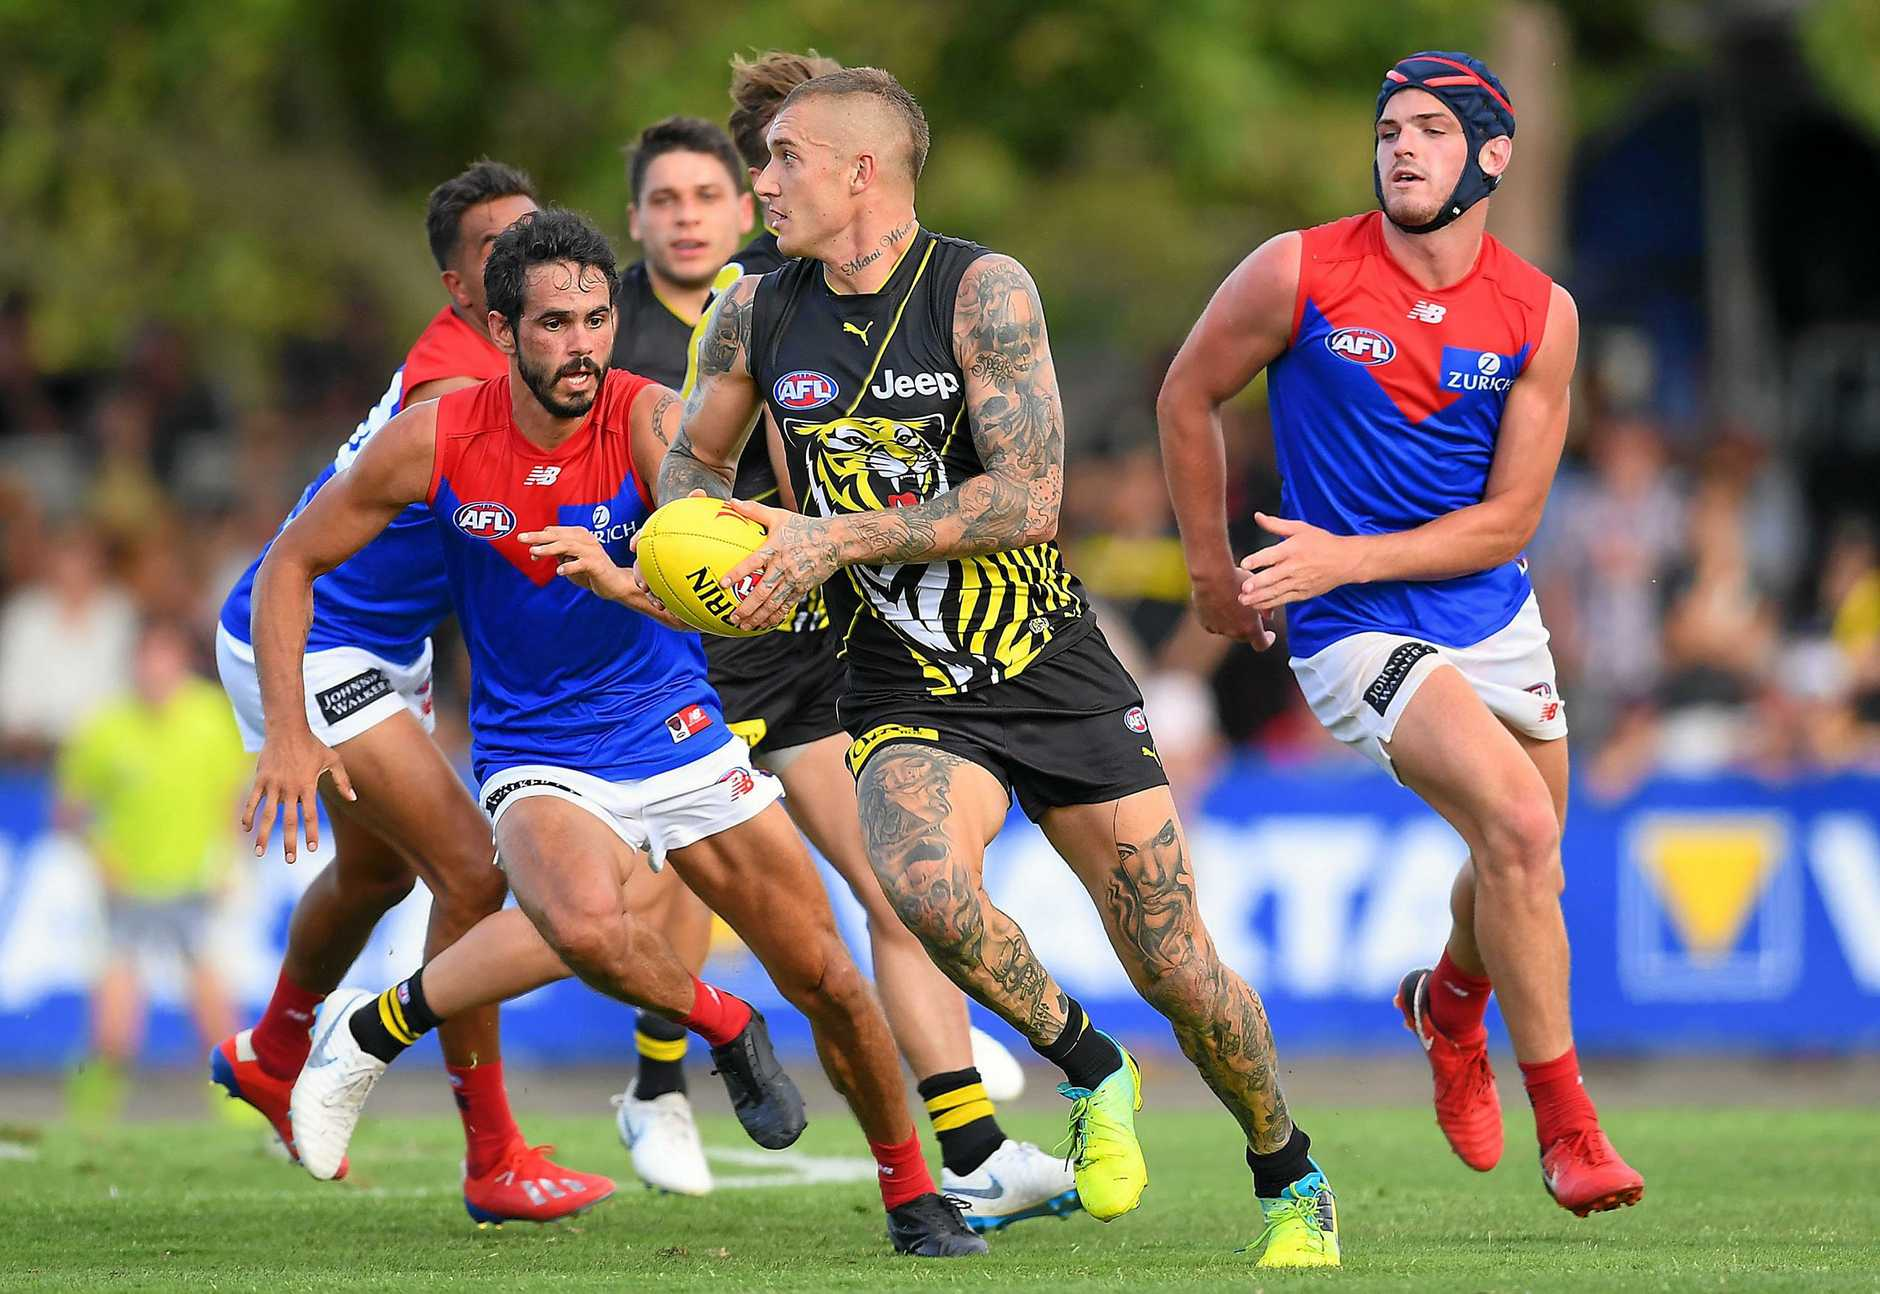 MELBOURNE, AUSTRALIA - MARCH 03: Dustin Martin of the Tigers breaks free from the centre during the 2019 JLT Community Series AFL match between the Richmond Tigers and the Melbourne Demons at Deakin Reserve on March 03, 2019 in Melbourne, Australia. (Photo by Quinn Rooney/Getty Images)